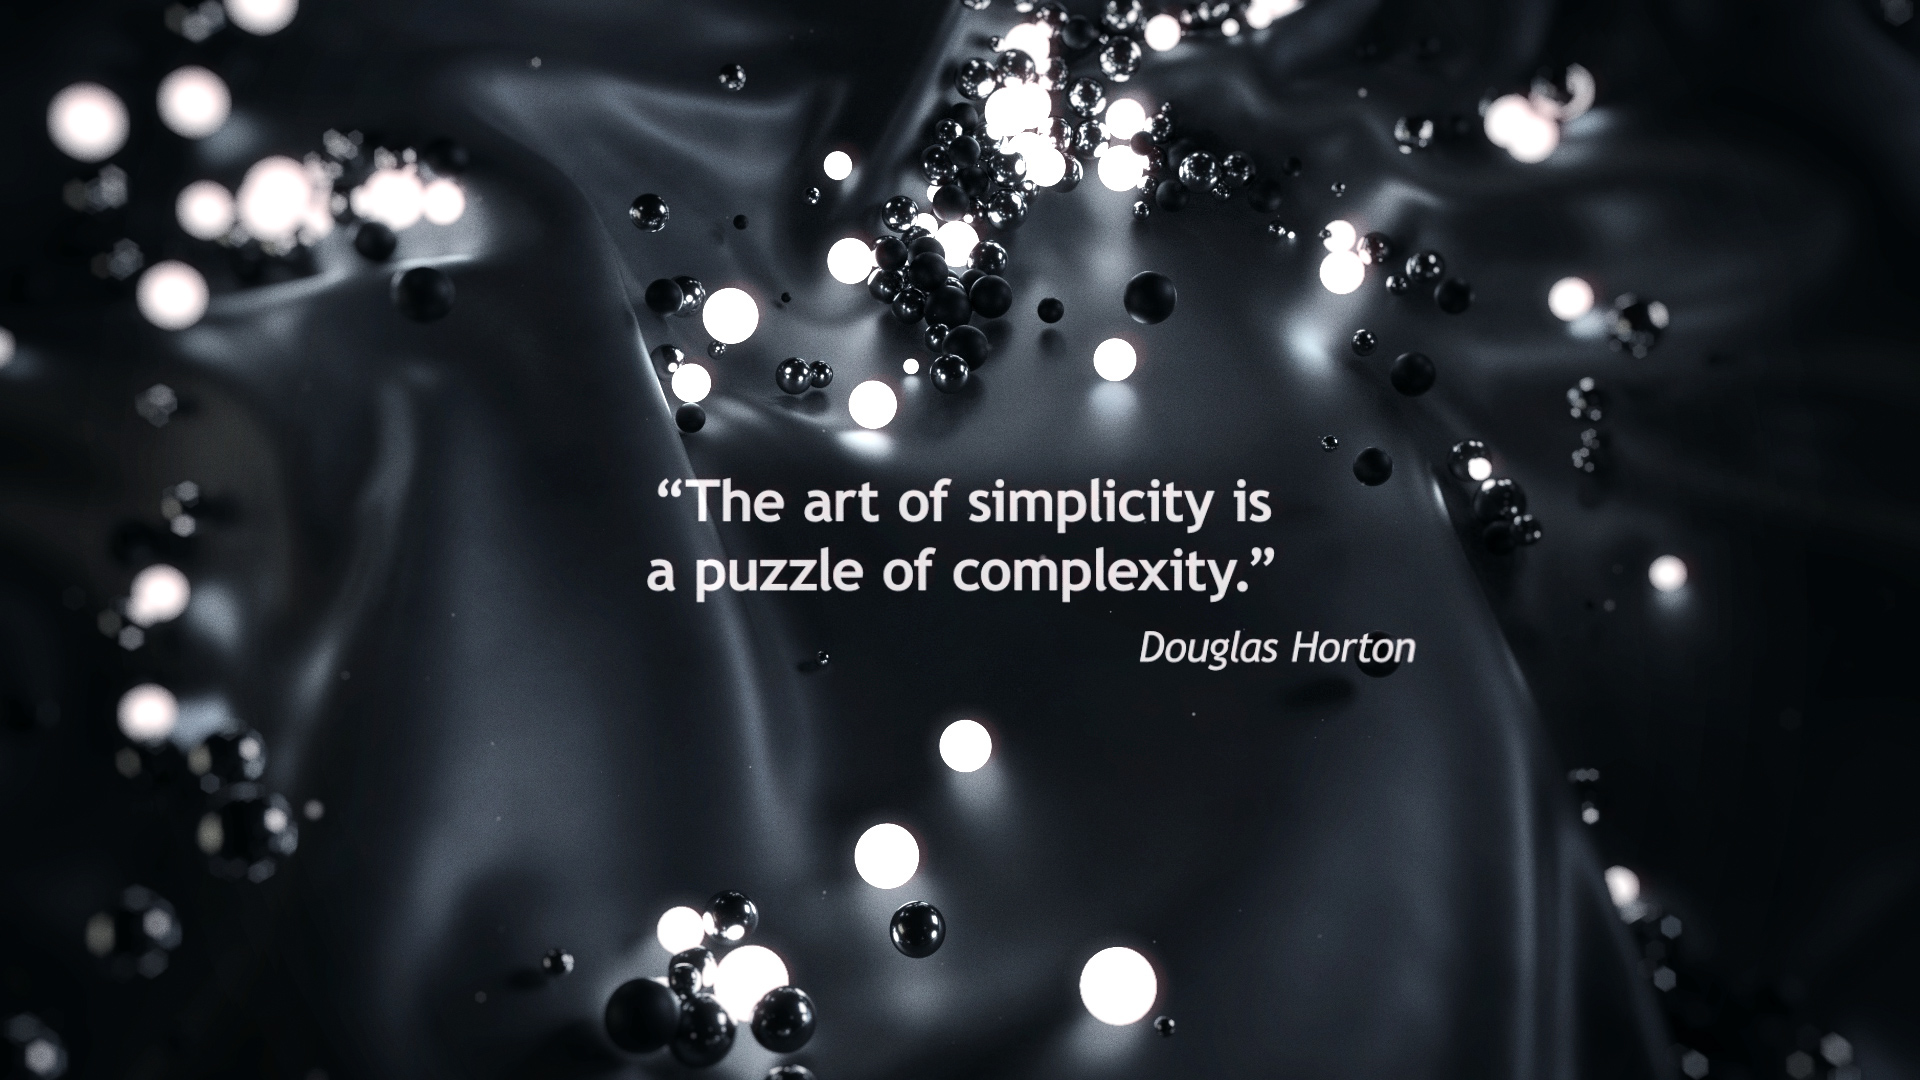 Art of Simplicity Quotes3480912763 - Art of Simplicity Quotes - Simplicity, Quotes, Quote, art